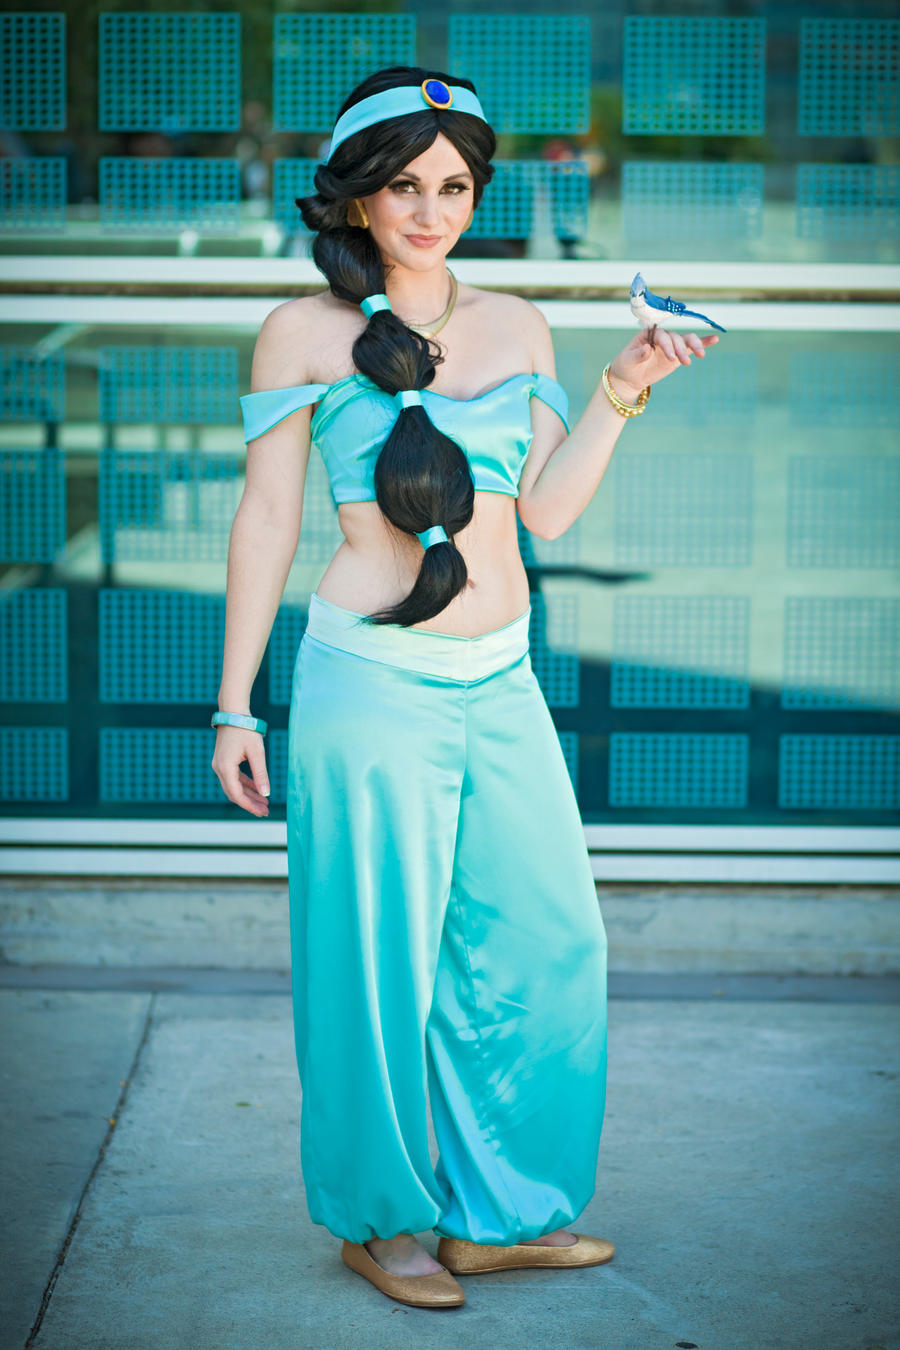 Princess Jasmine Cosplay by allieolson Princess Jasmine Cosplay by allieolson  sc 1 st  DeviantArt & Princess Jasmine Cosplay by allieolson on DeviantArt